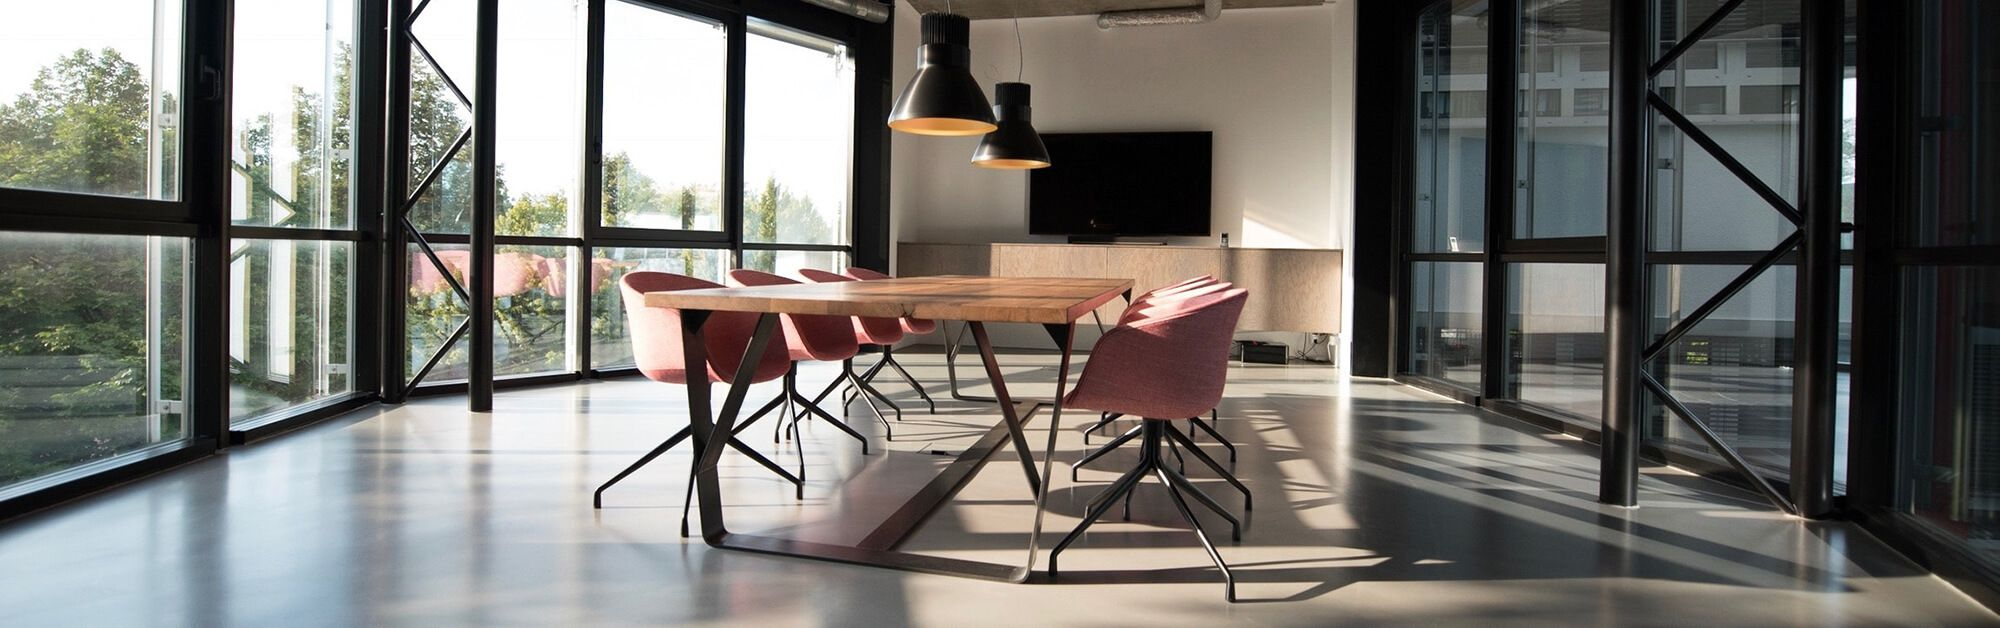 Tips for de-cluttering your office